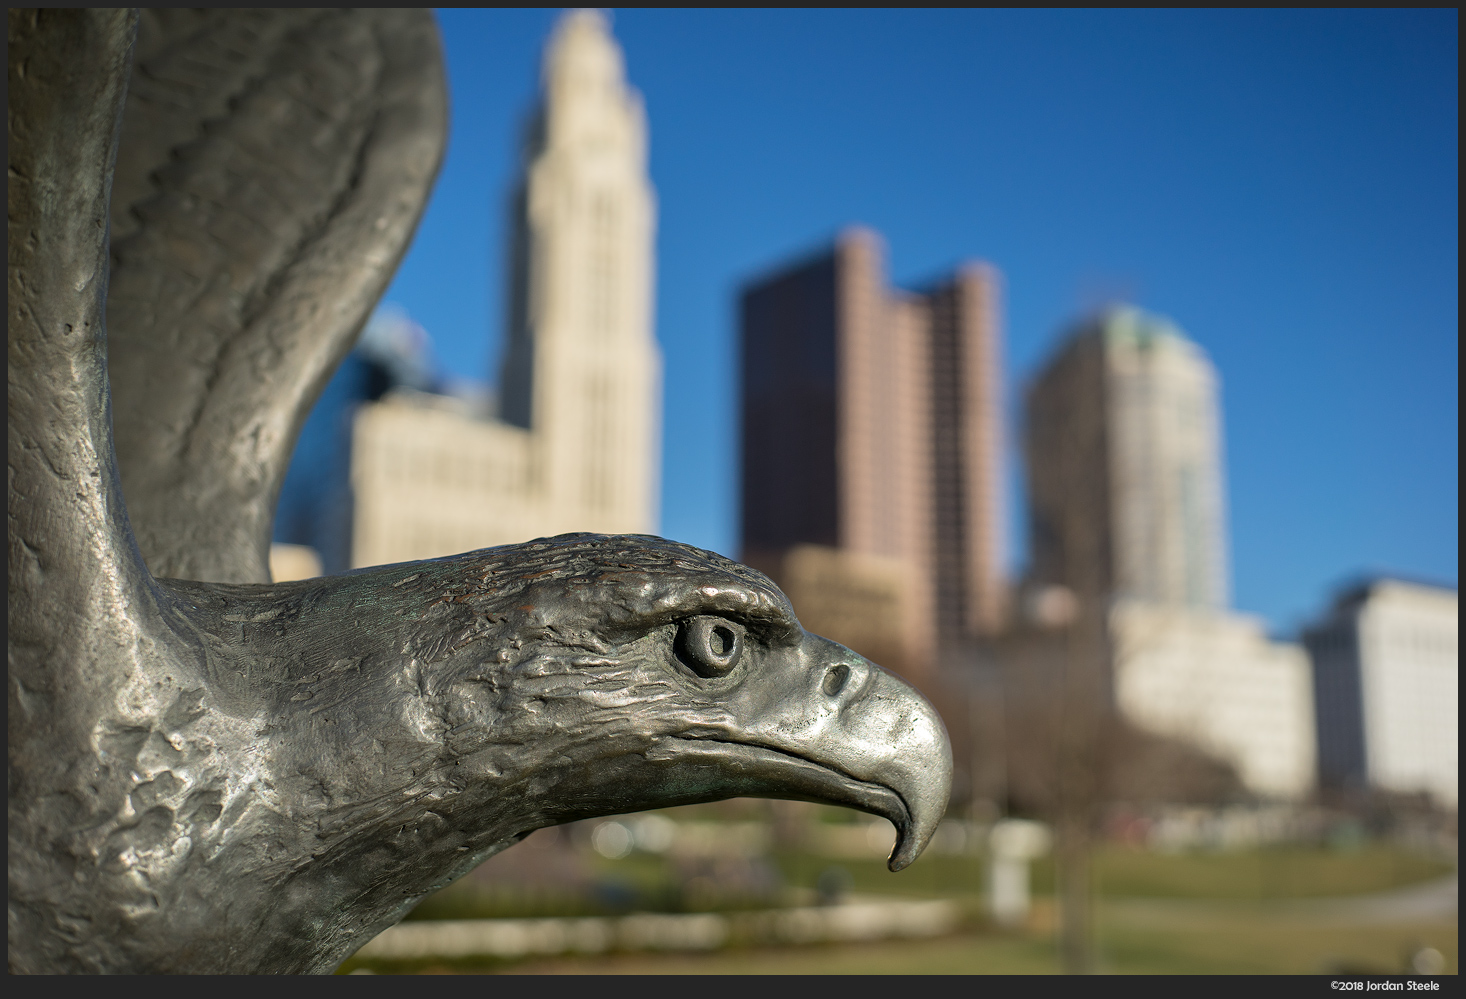 Eagle in Columbus - Sony A7 II with Voigtländer 35mm f/1.4 Nokton Classic @ f/3.5,